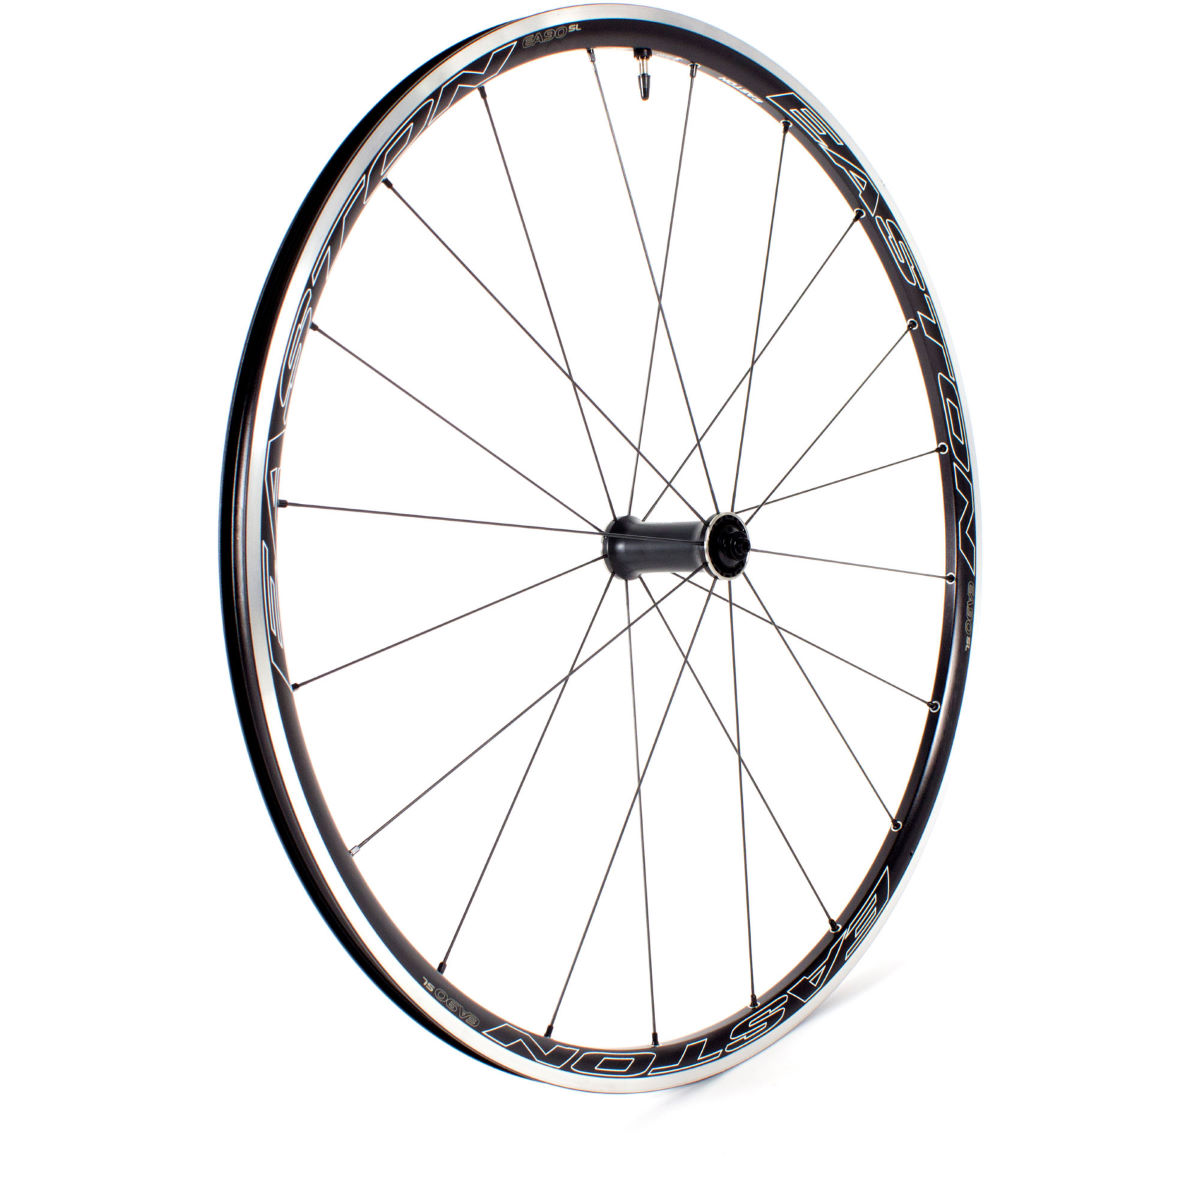 Easton EA 90 SL Alloy Tubeless Clincher Road Front Wheel   Performance Wheels